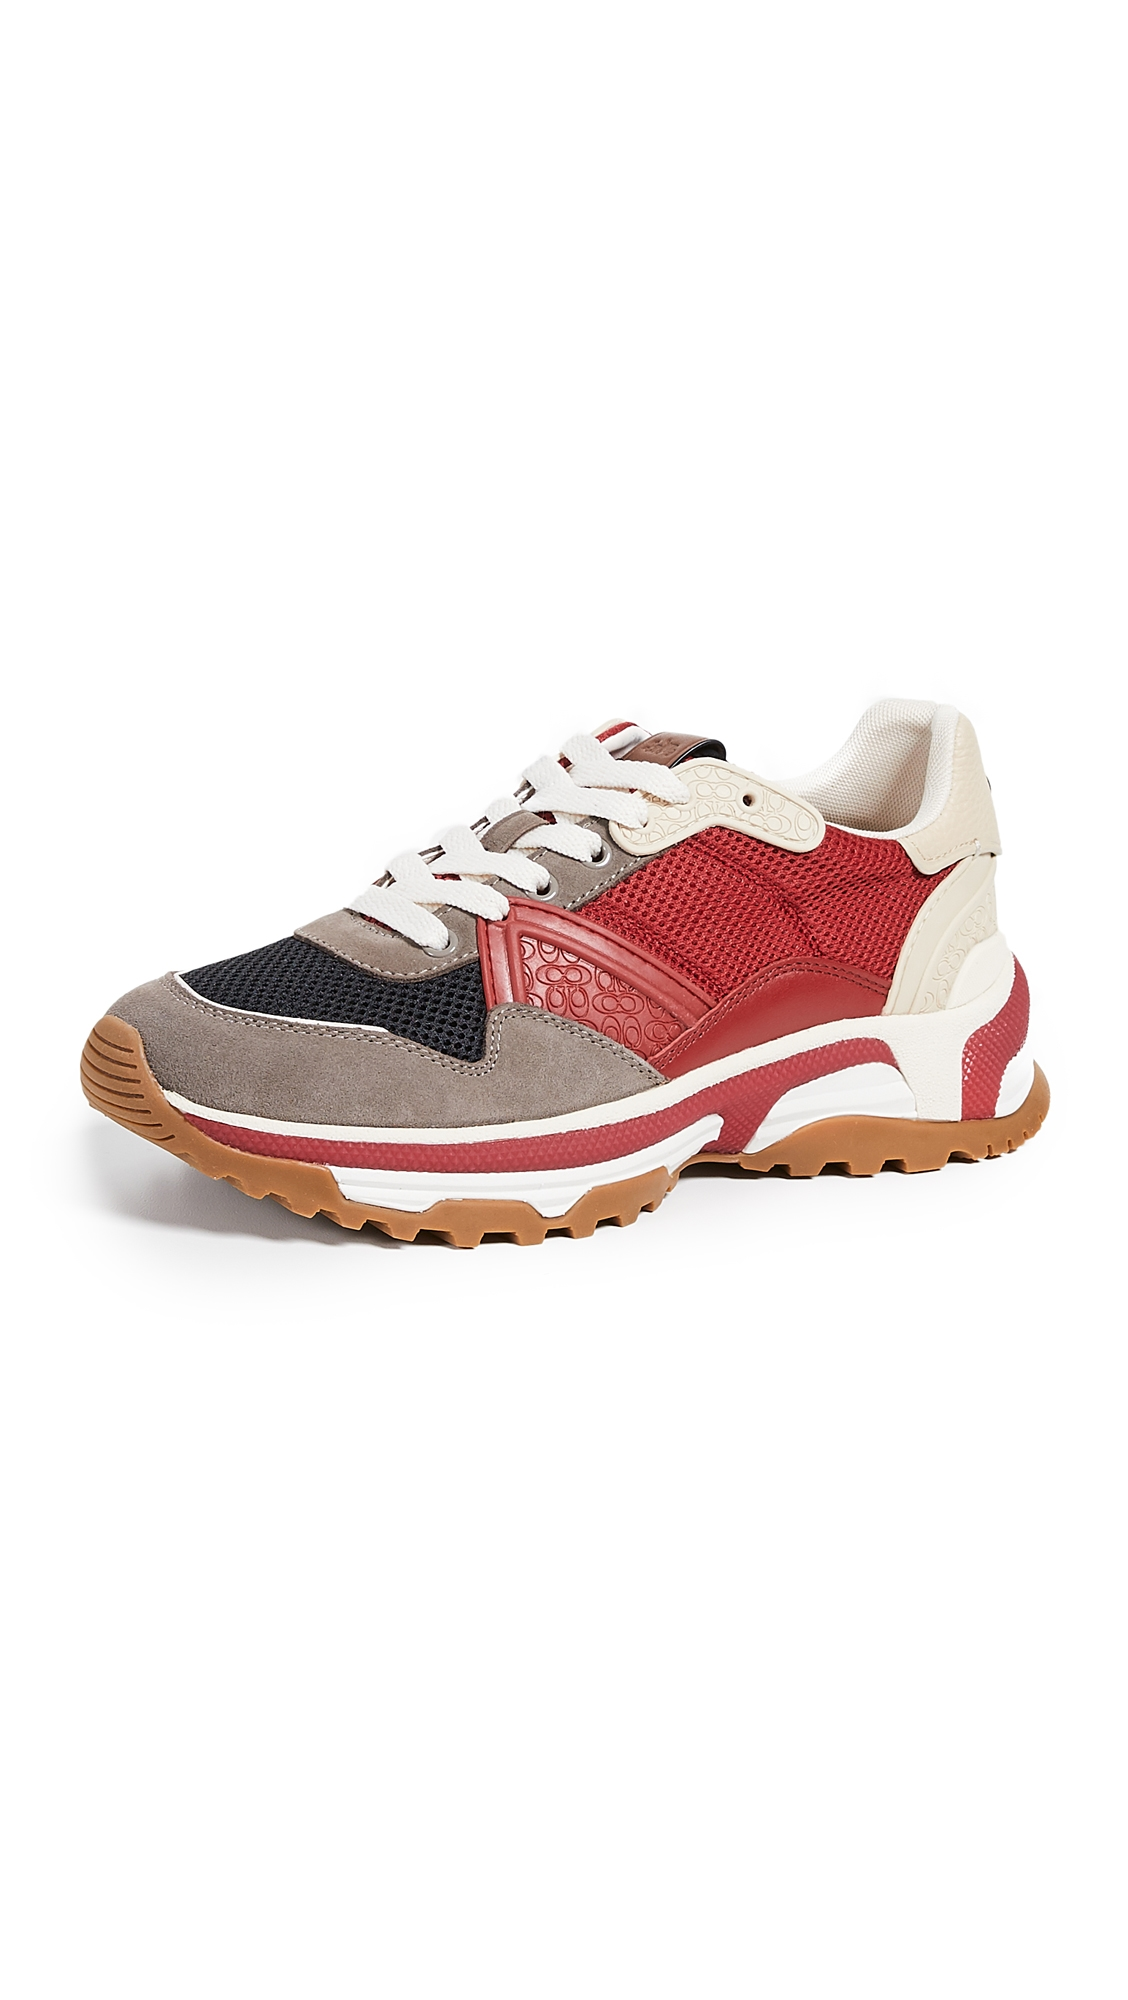 Coach Sneakers C143 Active Mixed Material Sneakers